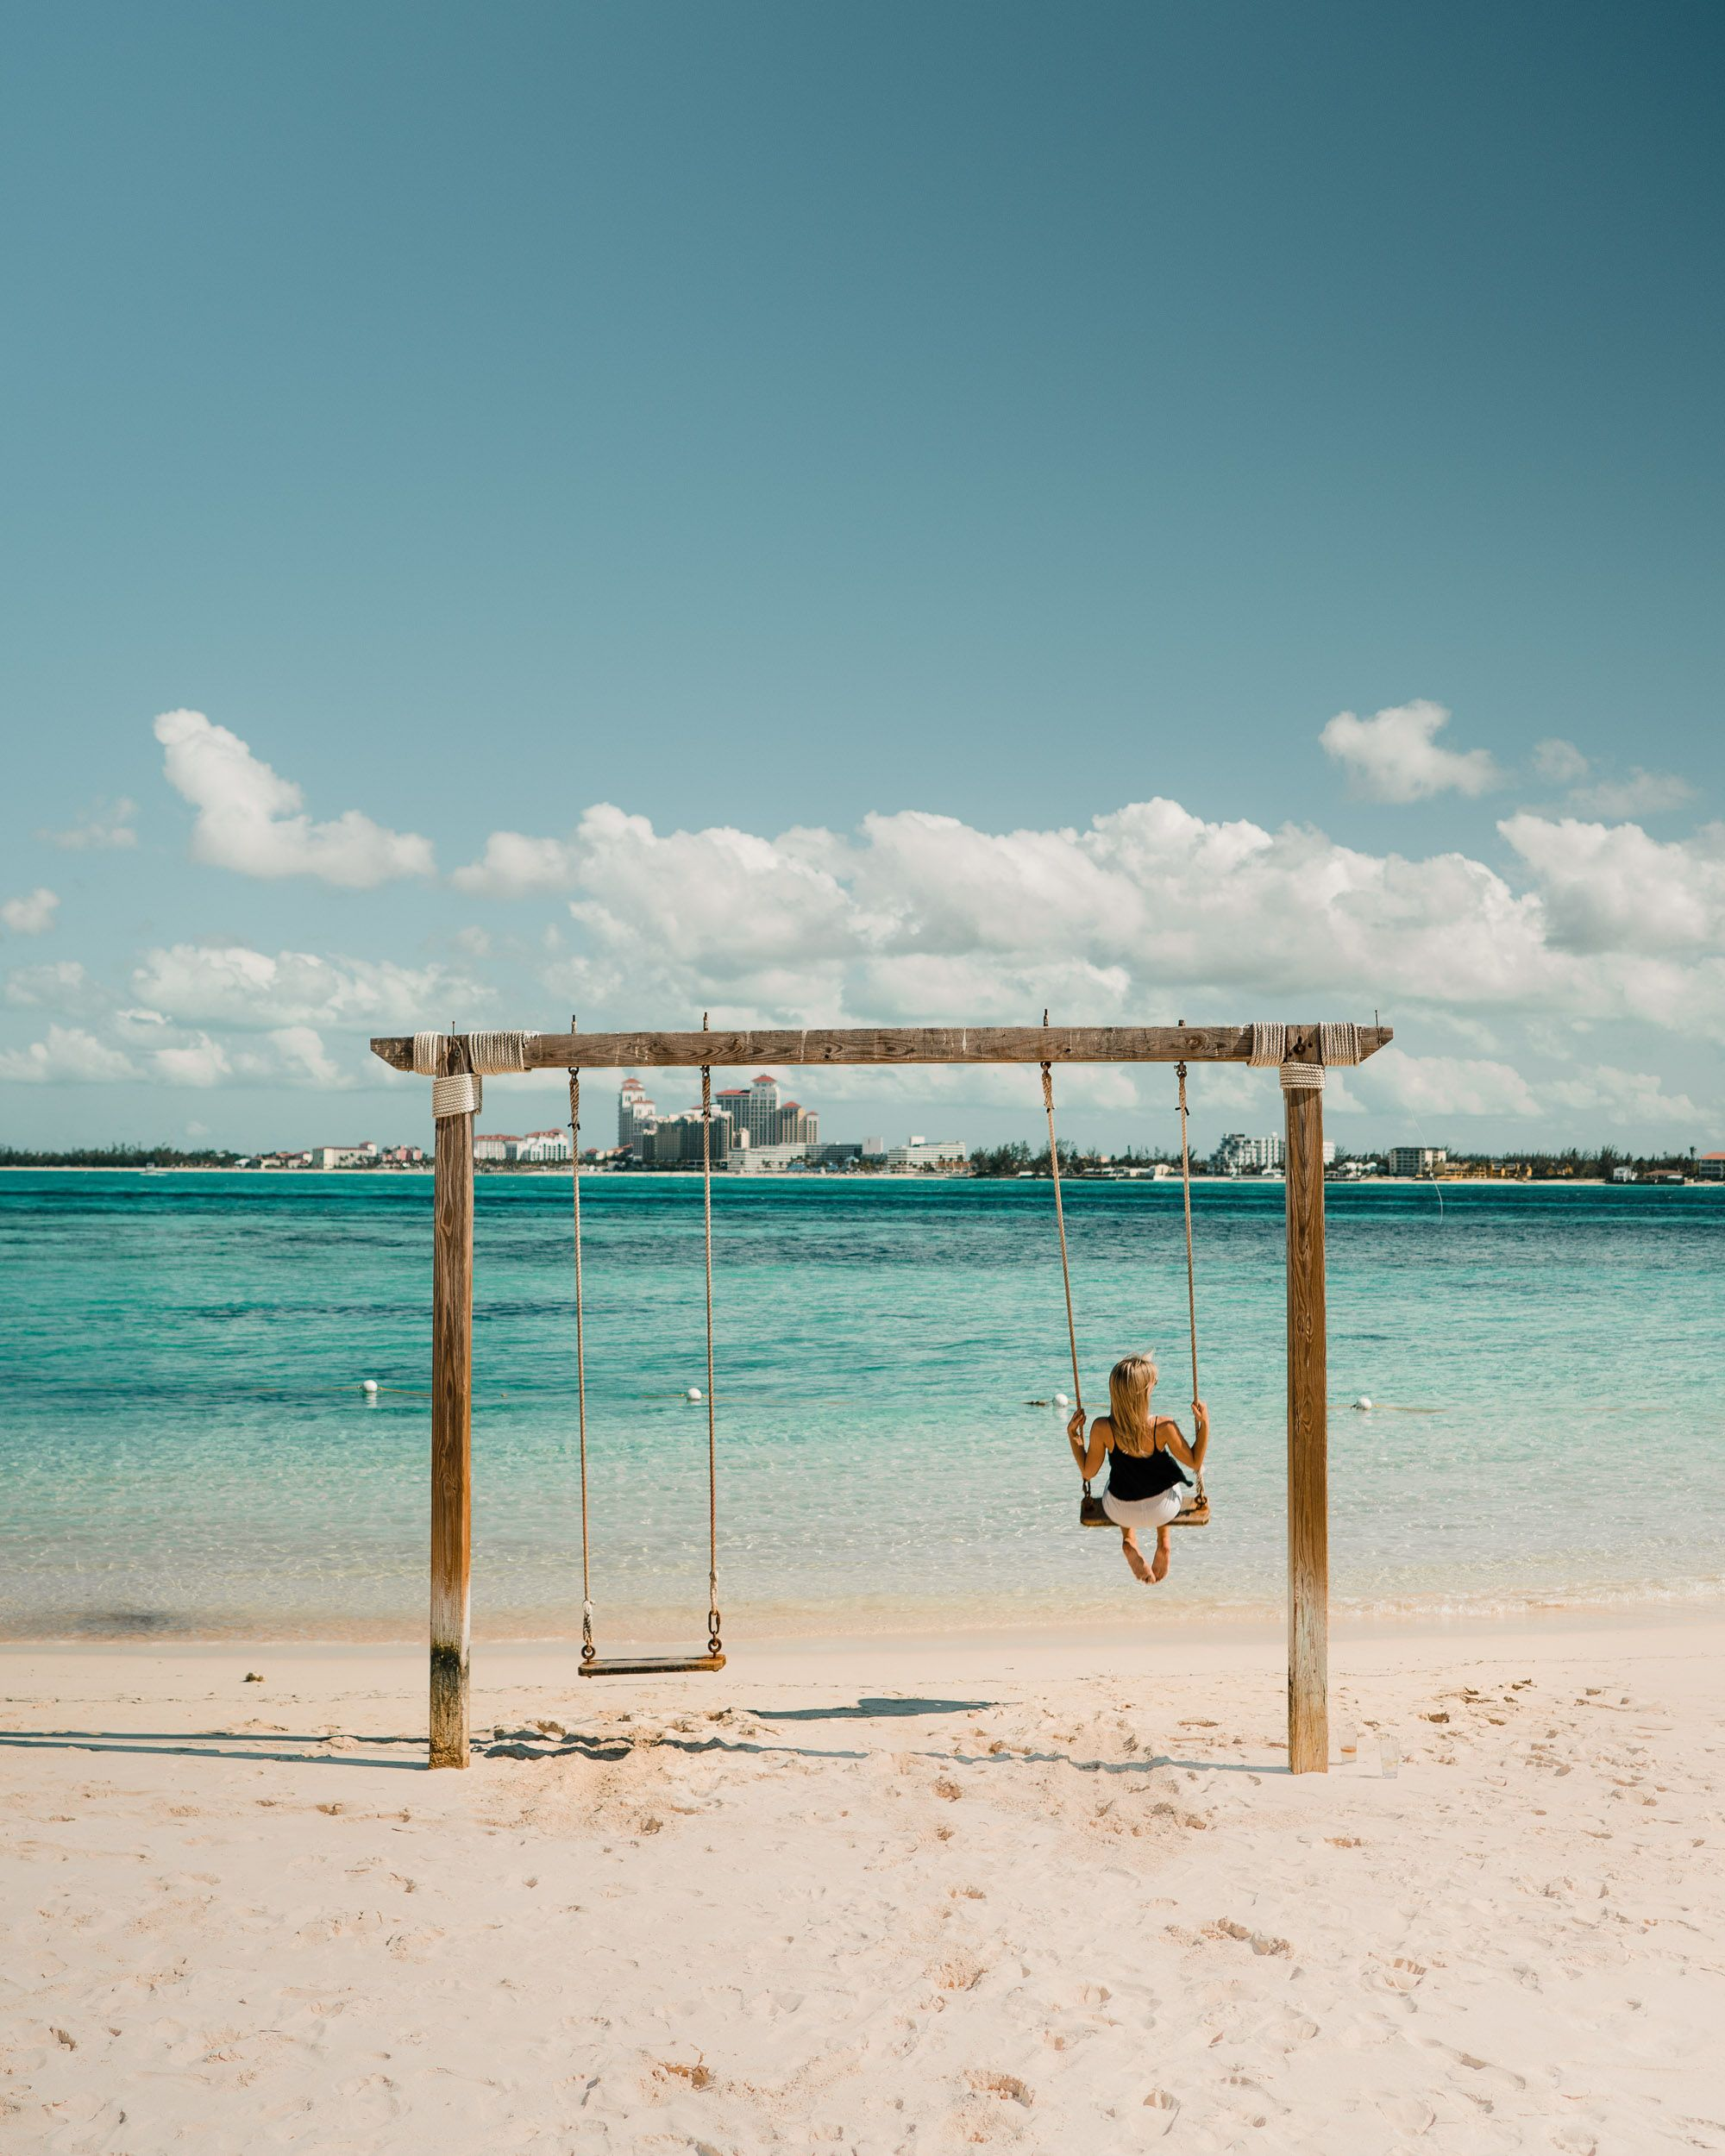 f65dcf1ace8f48 Swing on the water at Sandals private island resort in Nassau Bahamas